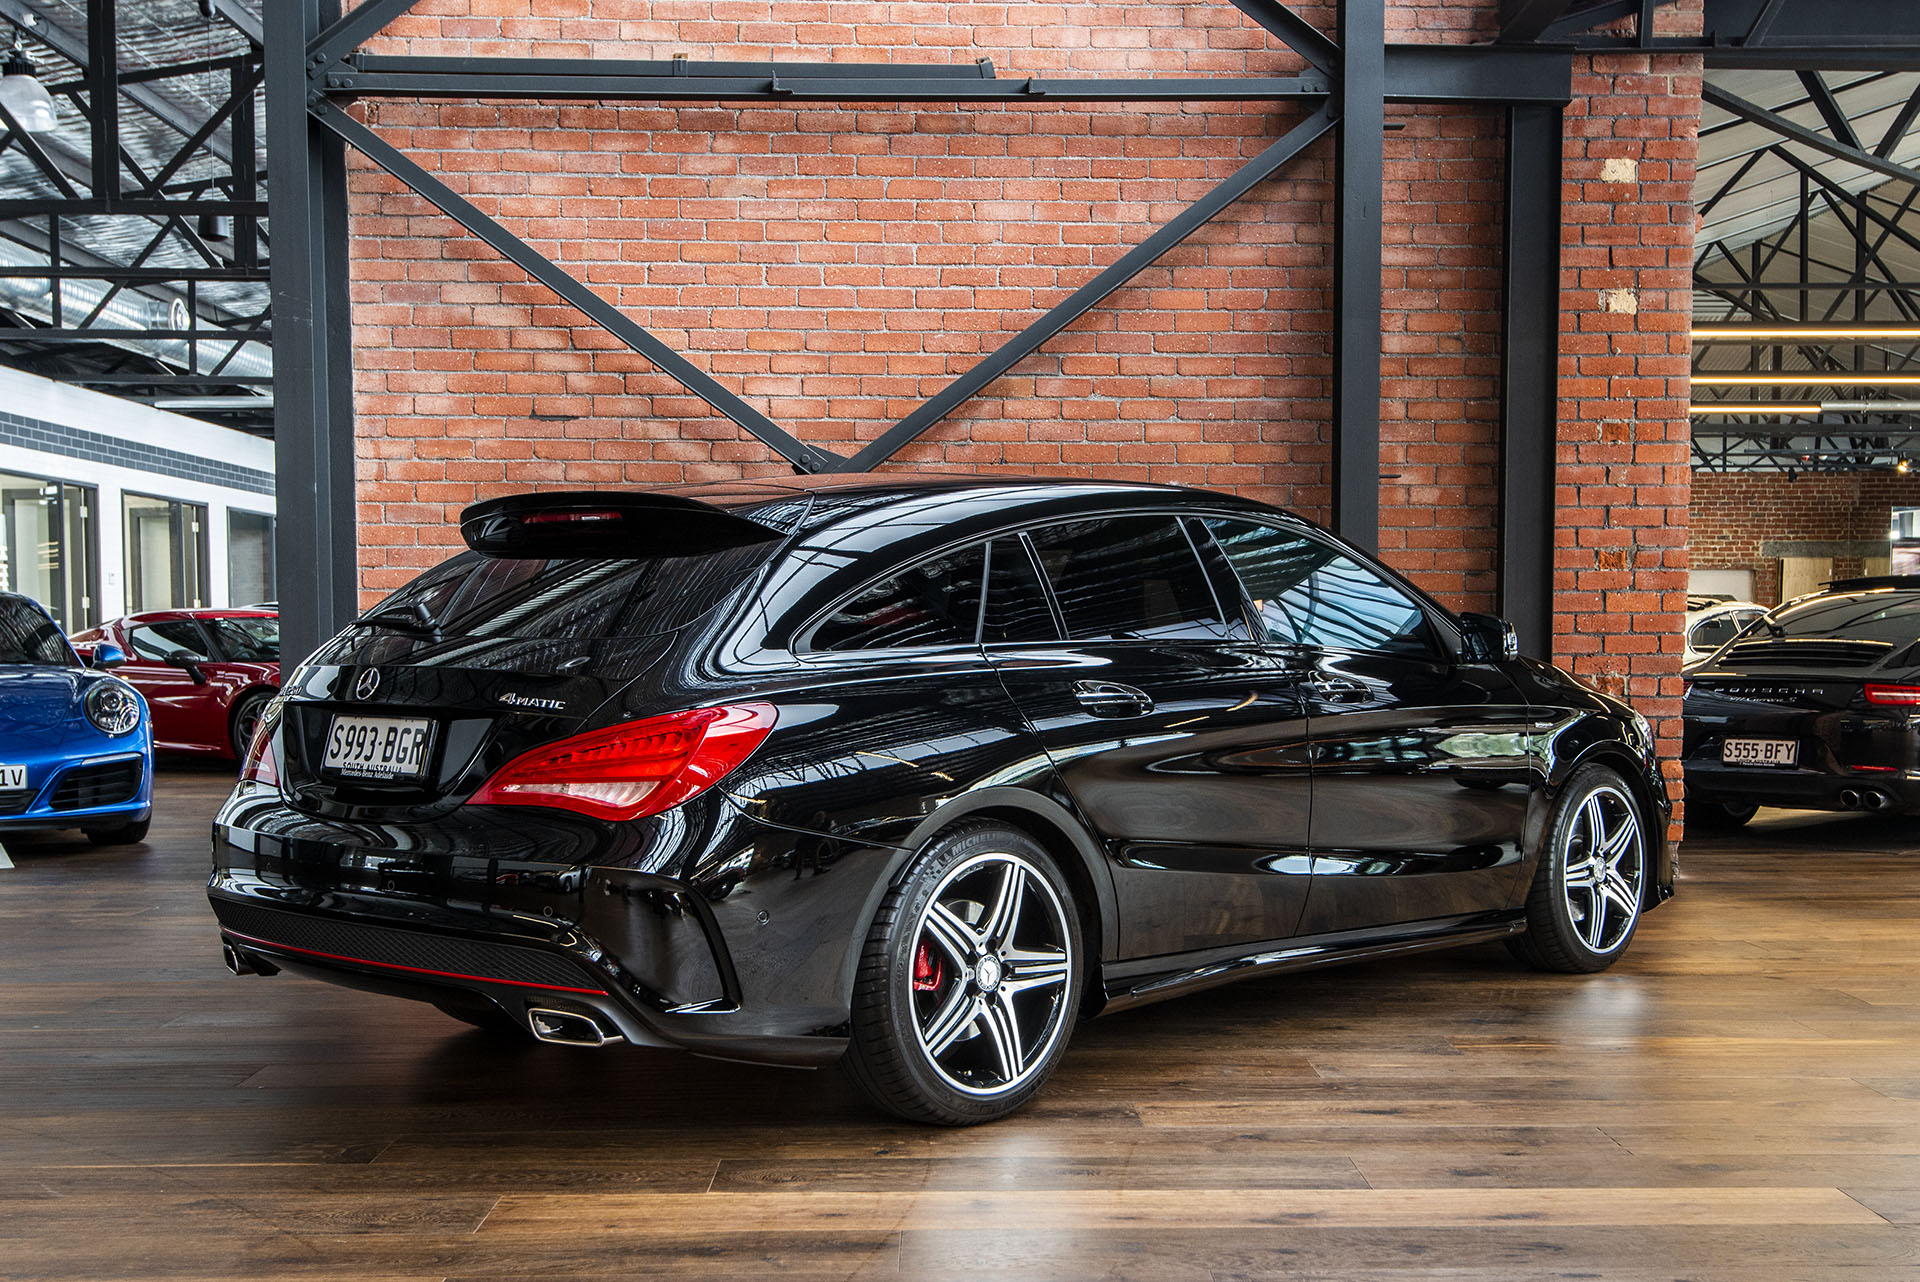 Performance Cars For Sale >> 2015 Mercedes Benz CLA 250 - Richmonds - Classic and ...